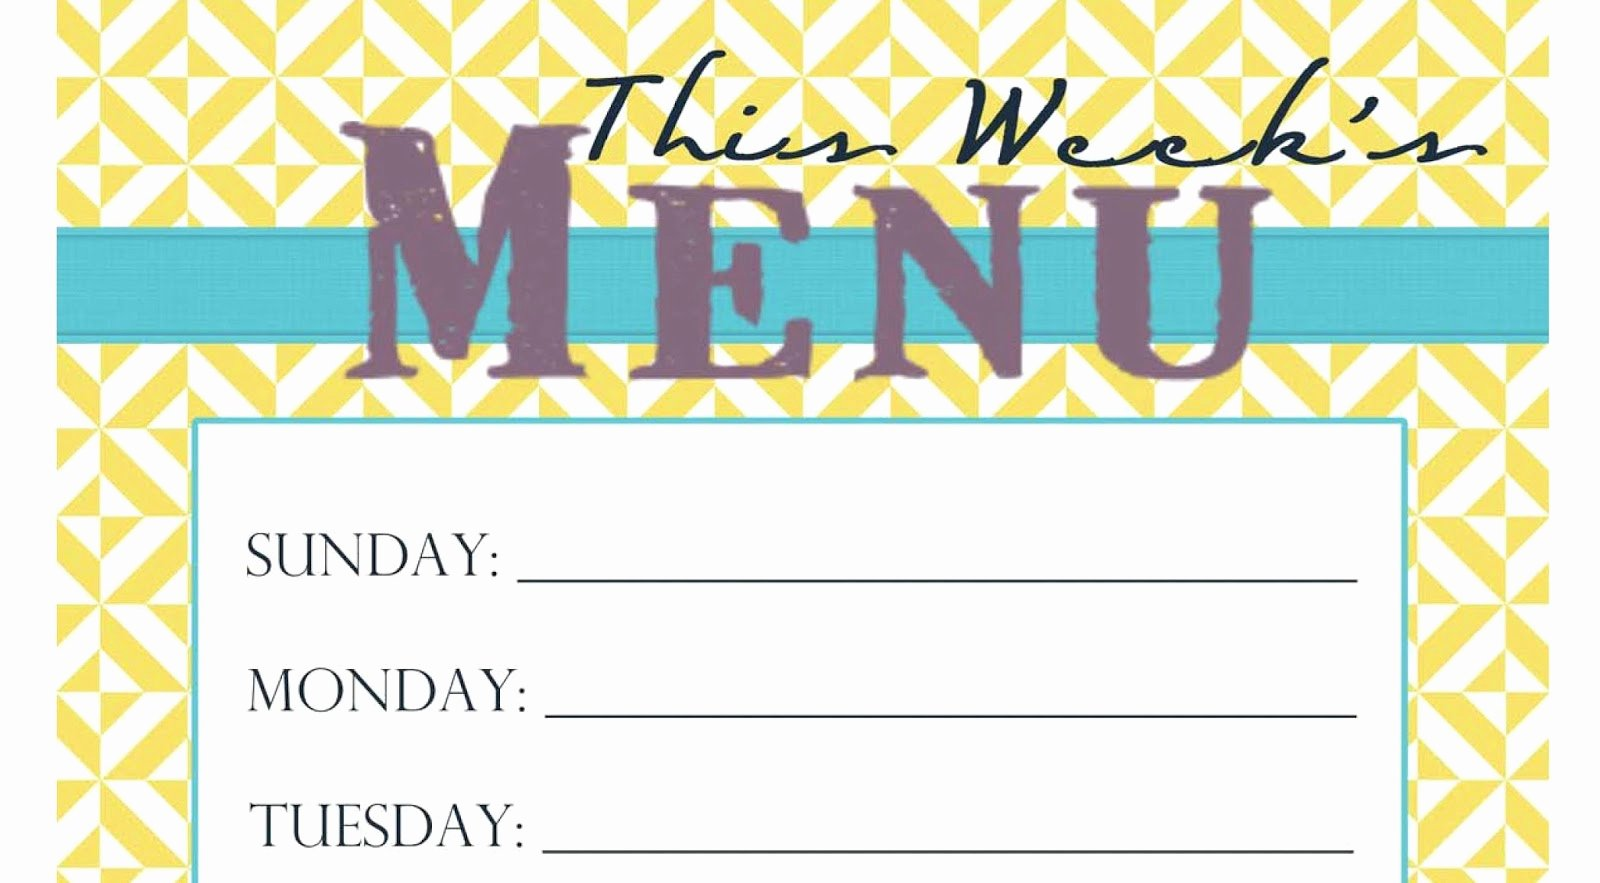 Free Printable Menu Templates Elegant Jenna Blogs Pinterest Picks 5 Sites I Found and Love